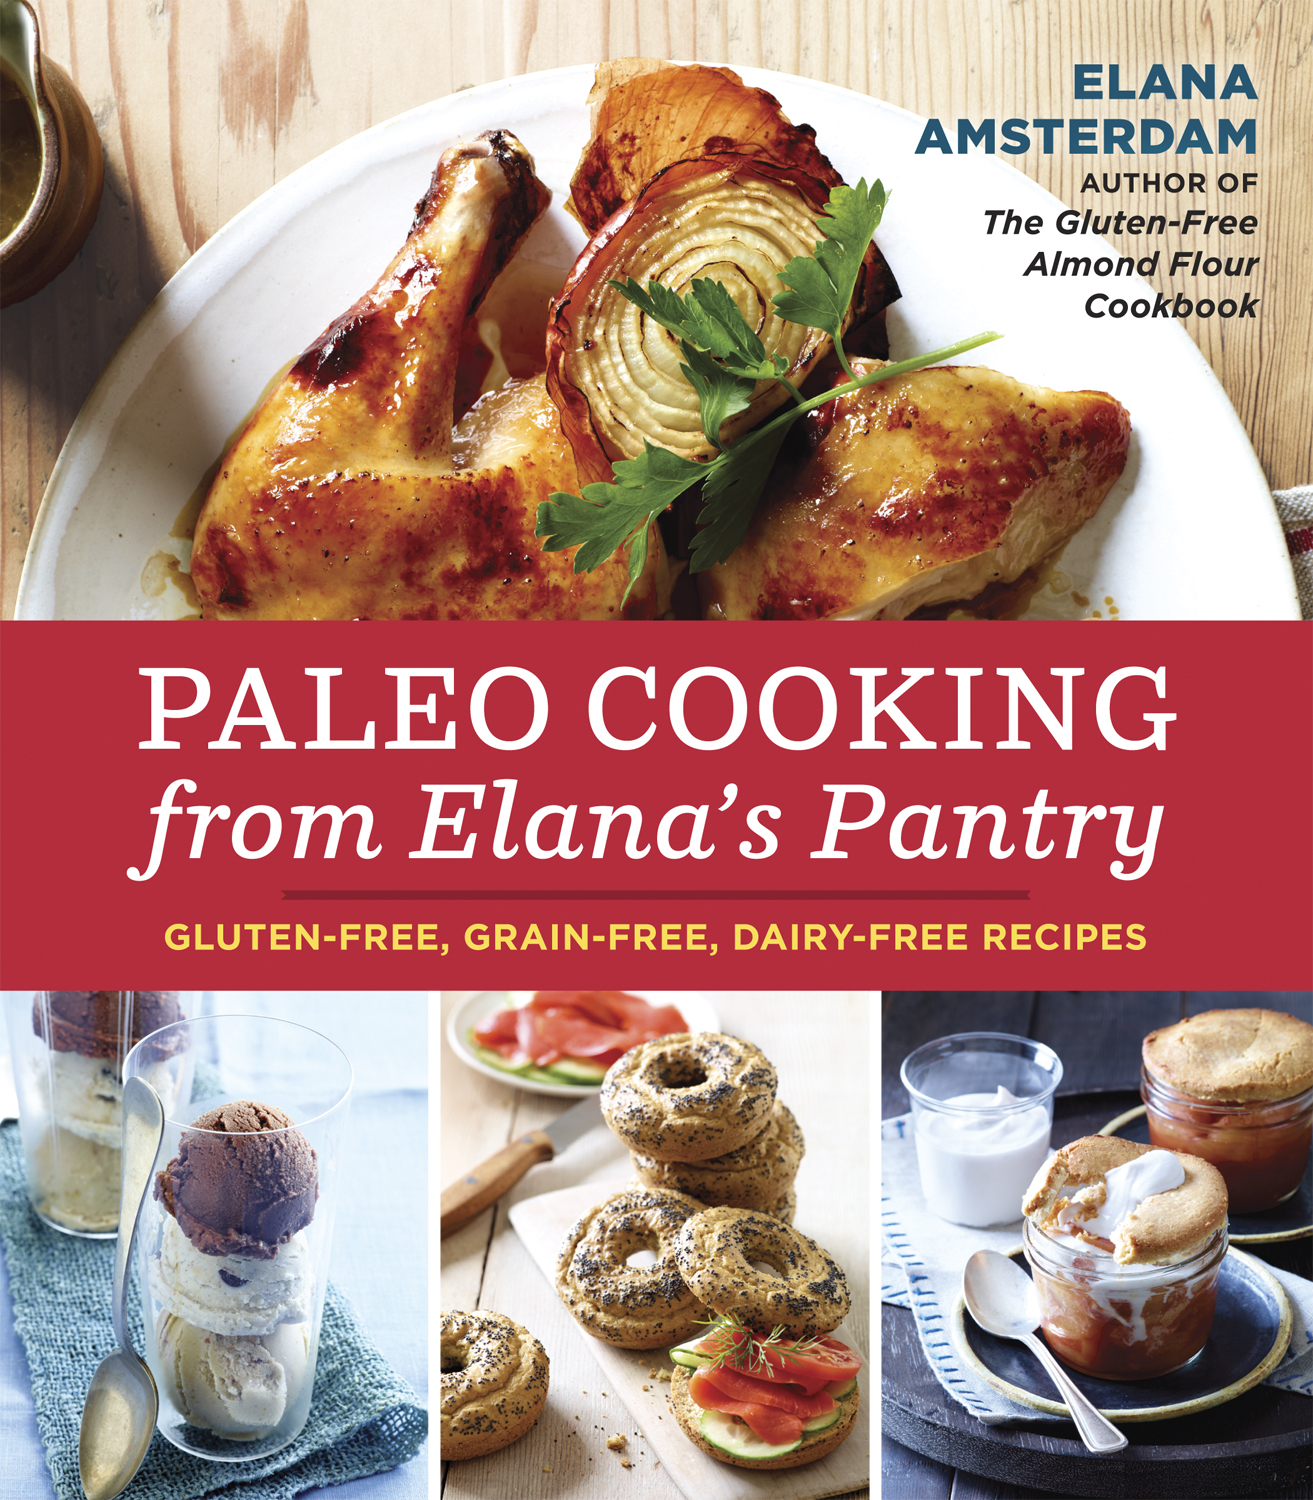 Paleo Cooking from Elana's Pantry; Review and Giveaway!